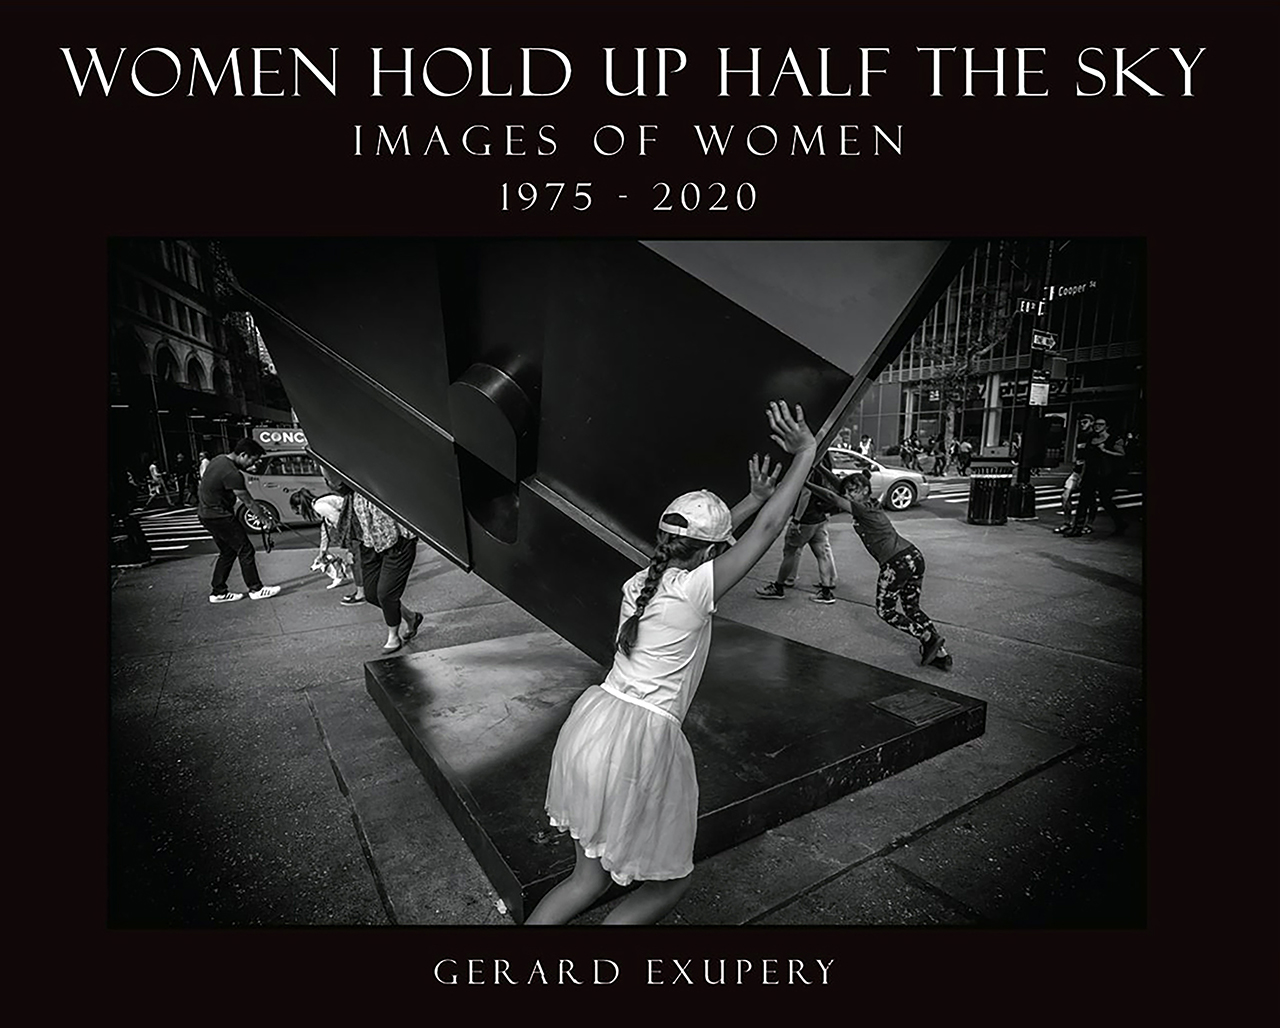 NEWS: Gerard Exupery's 'Women Hold Up Half the Sky' Book IndieGoGo Campaign